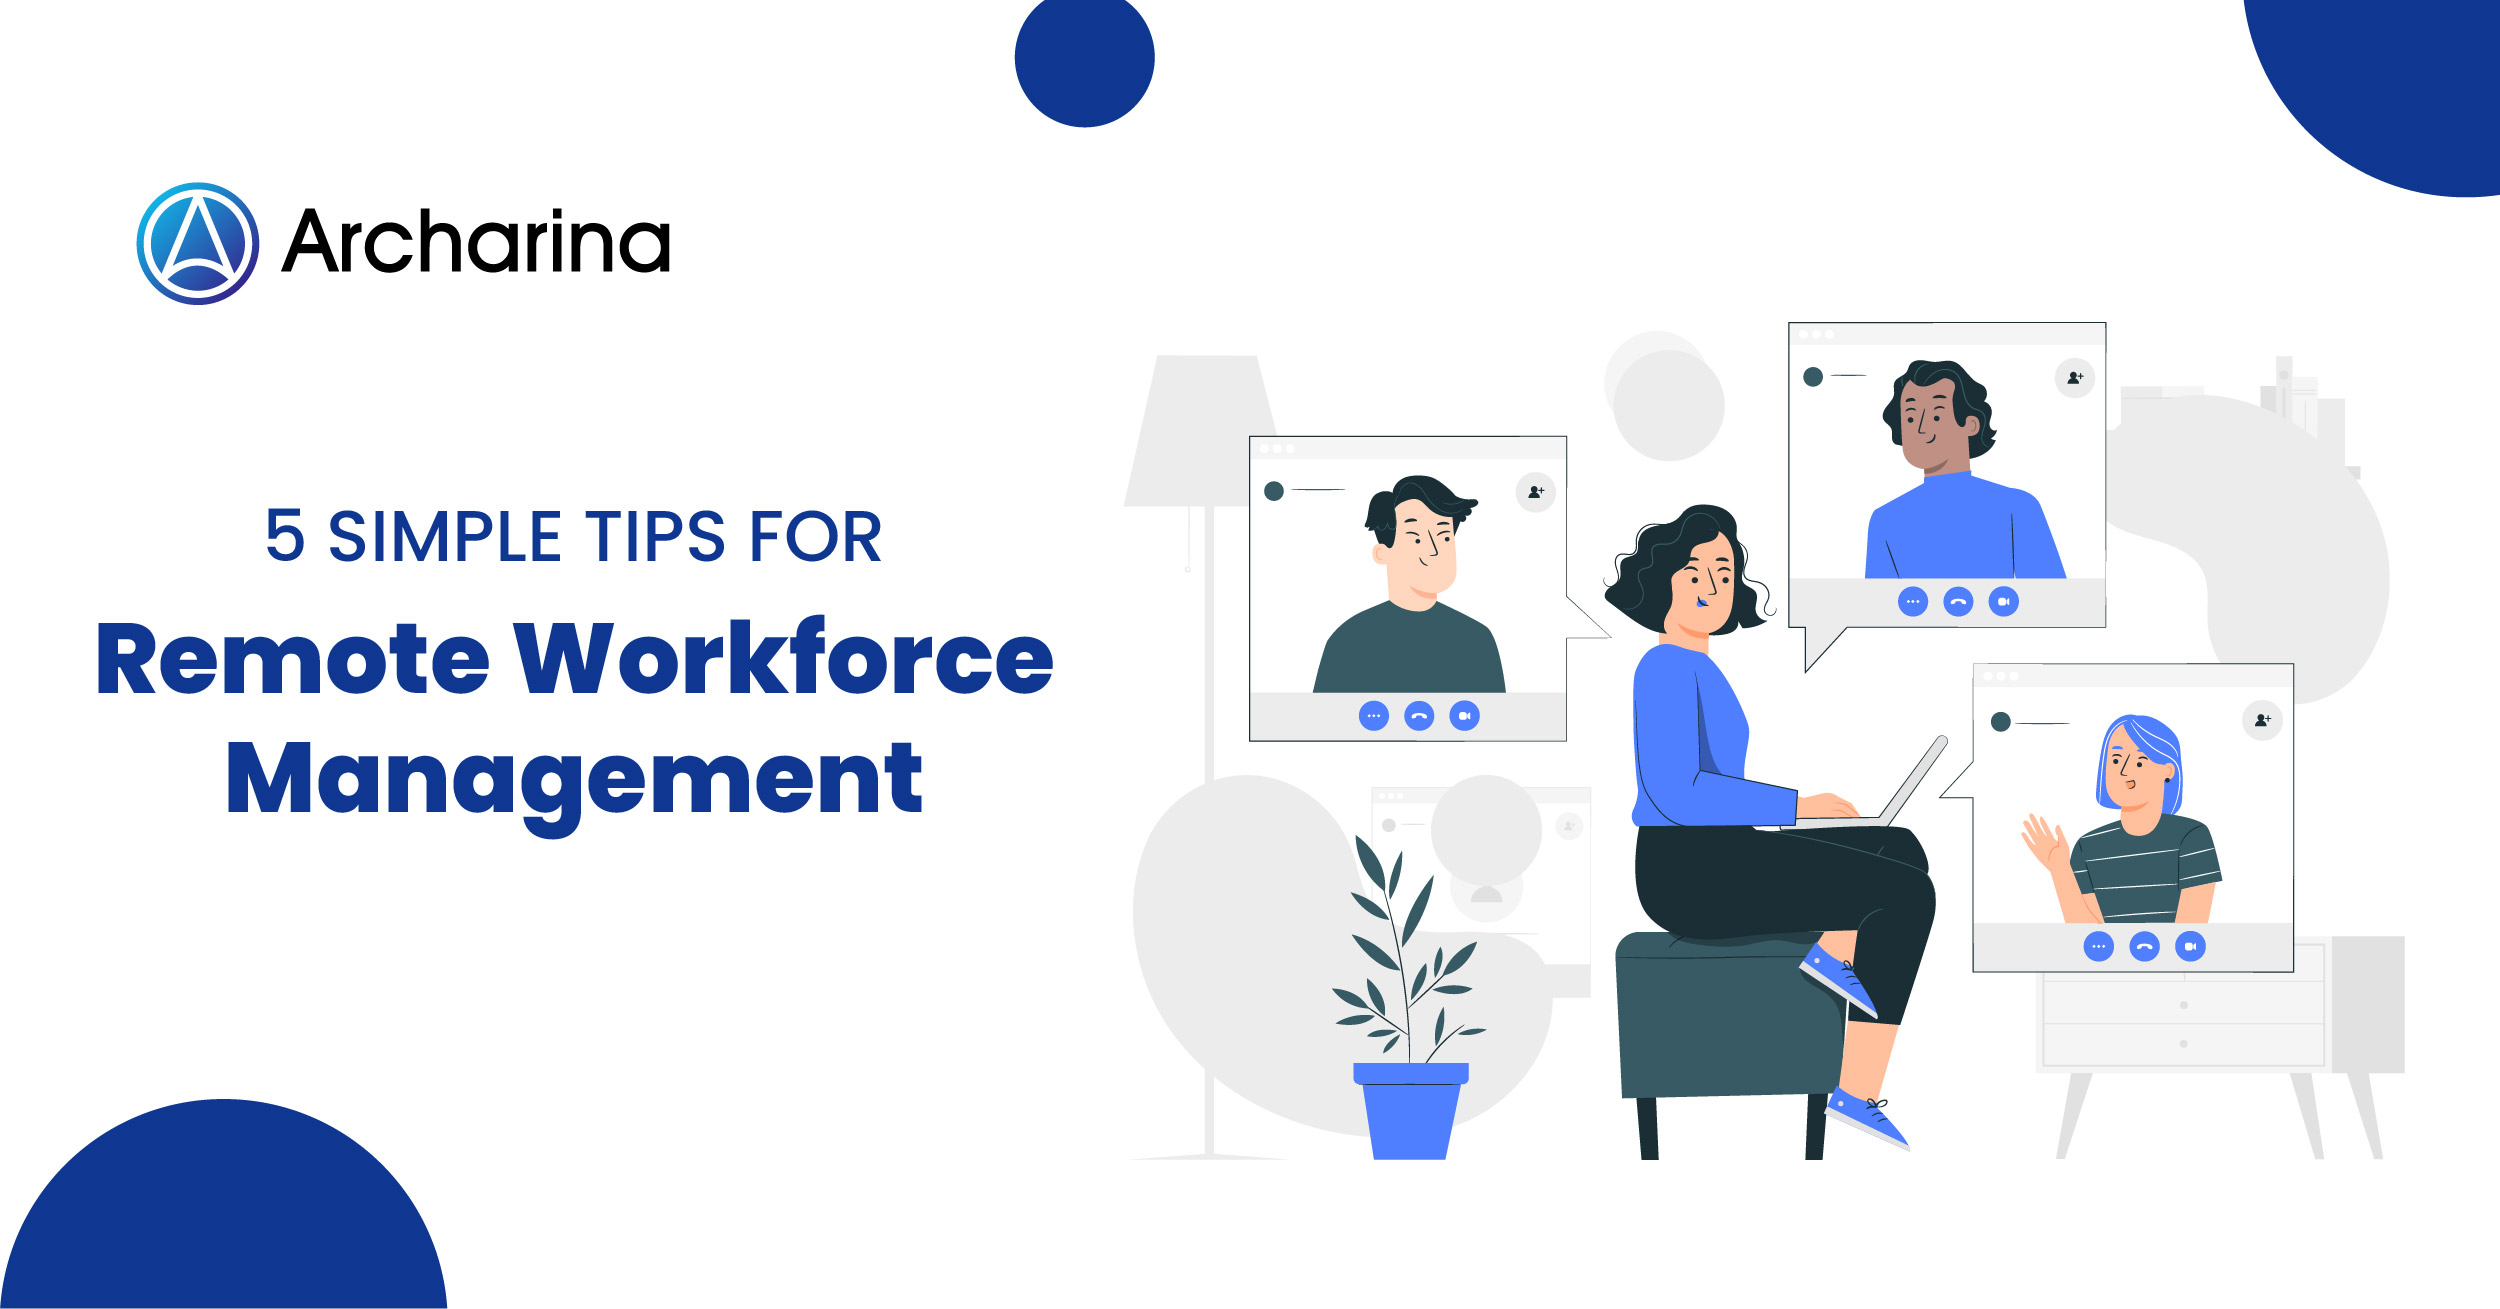 5 Simple Tips for Remote Workforce Management